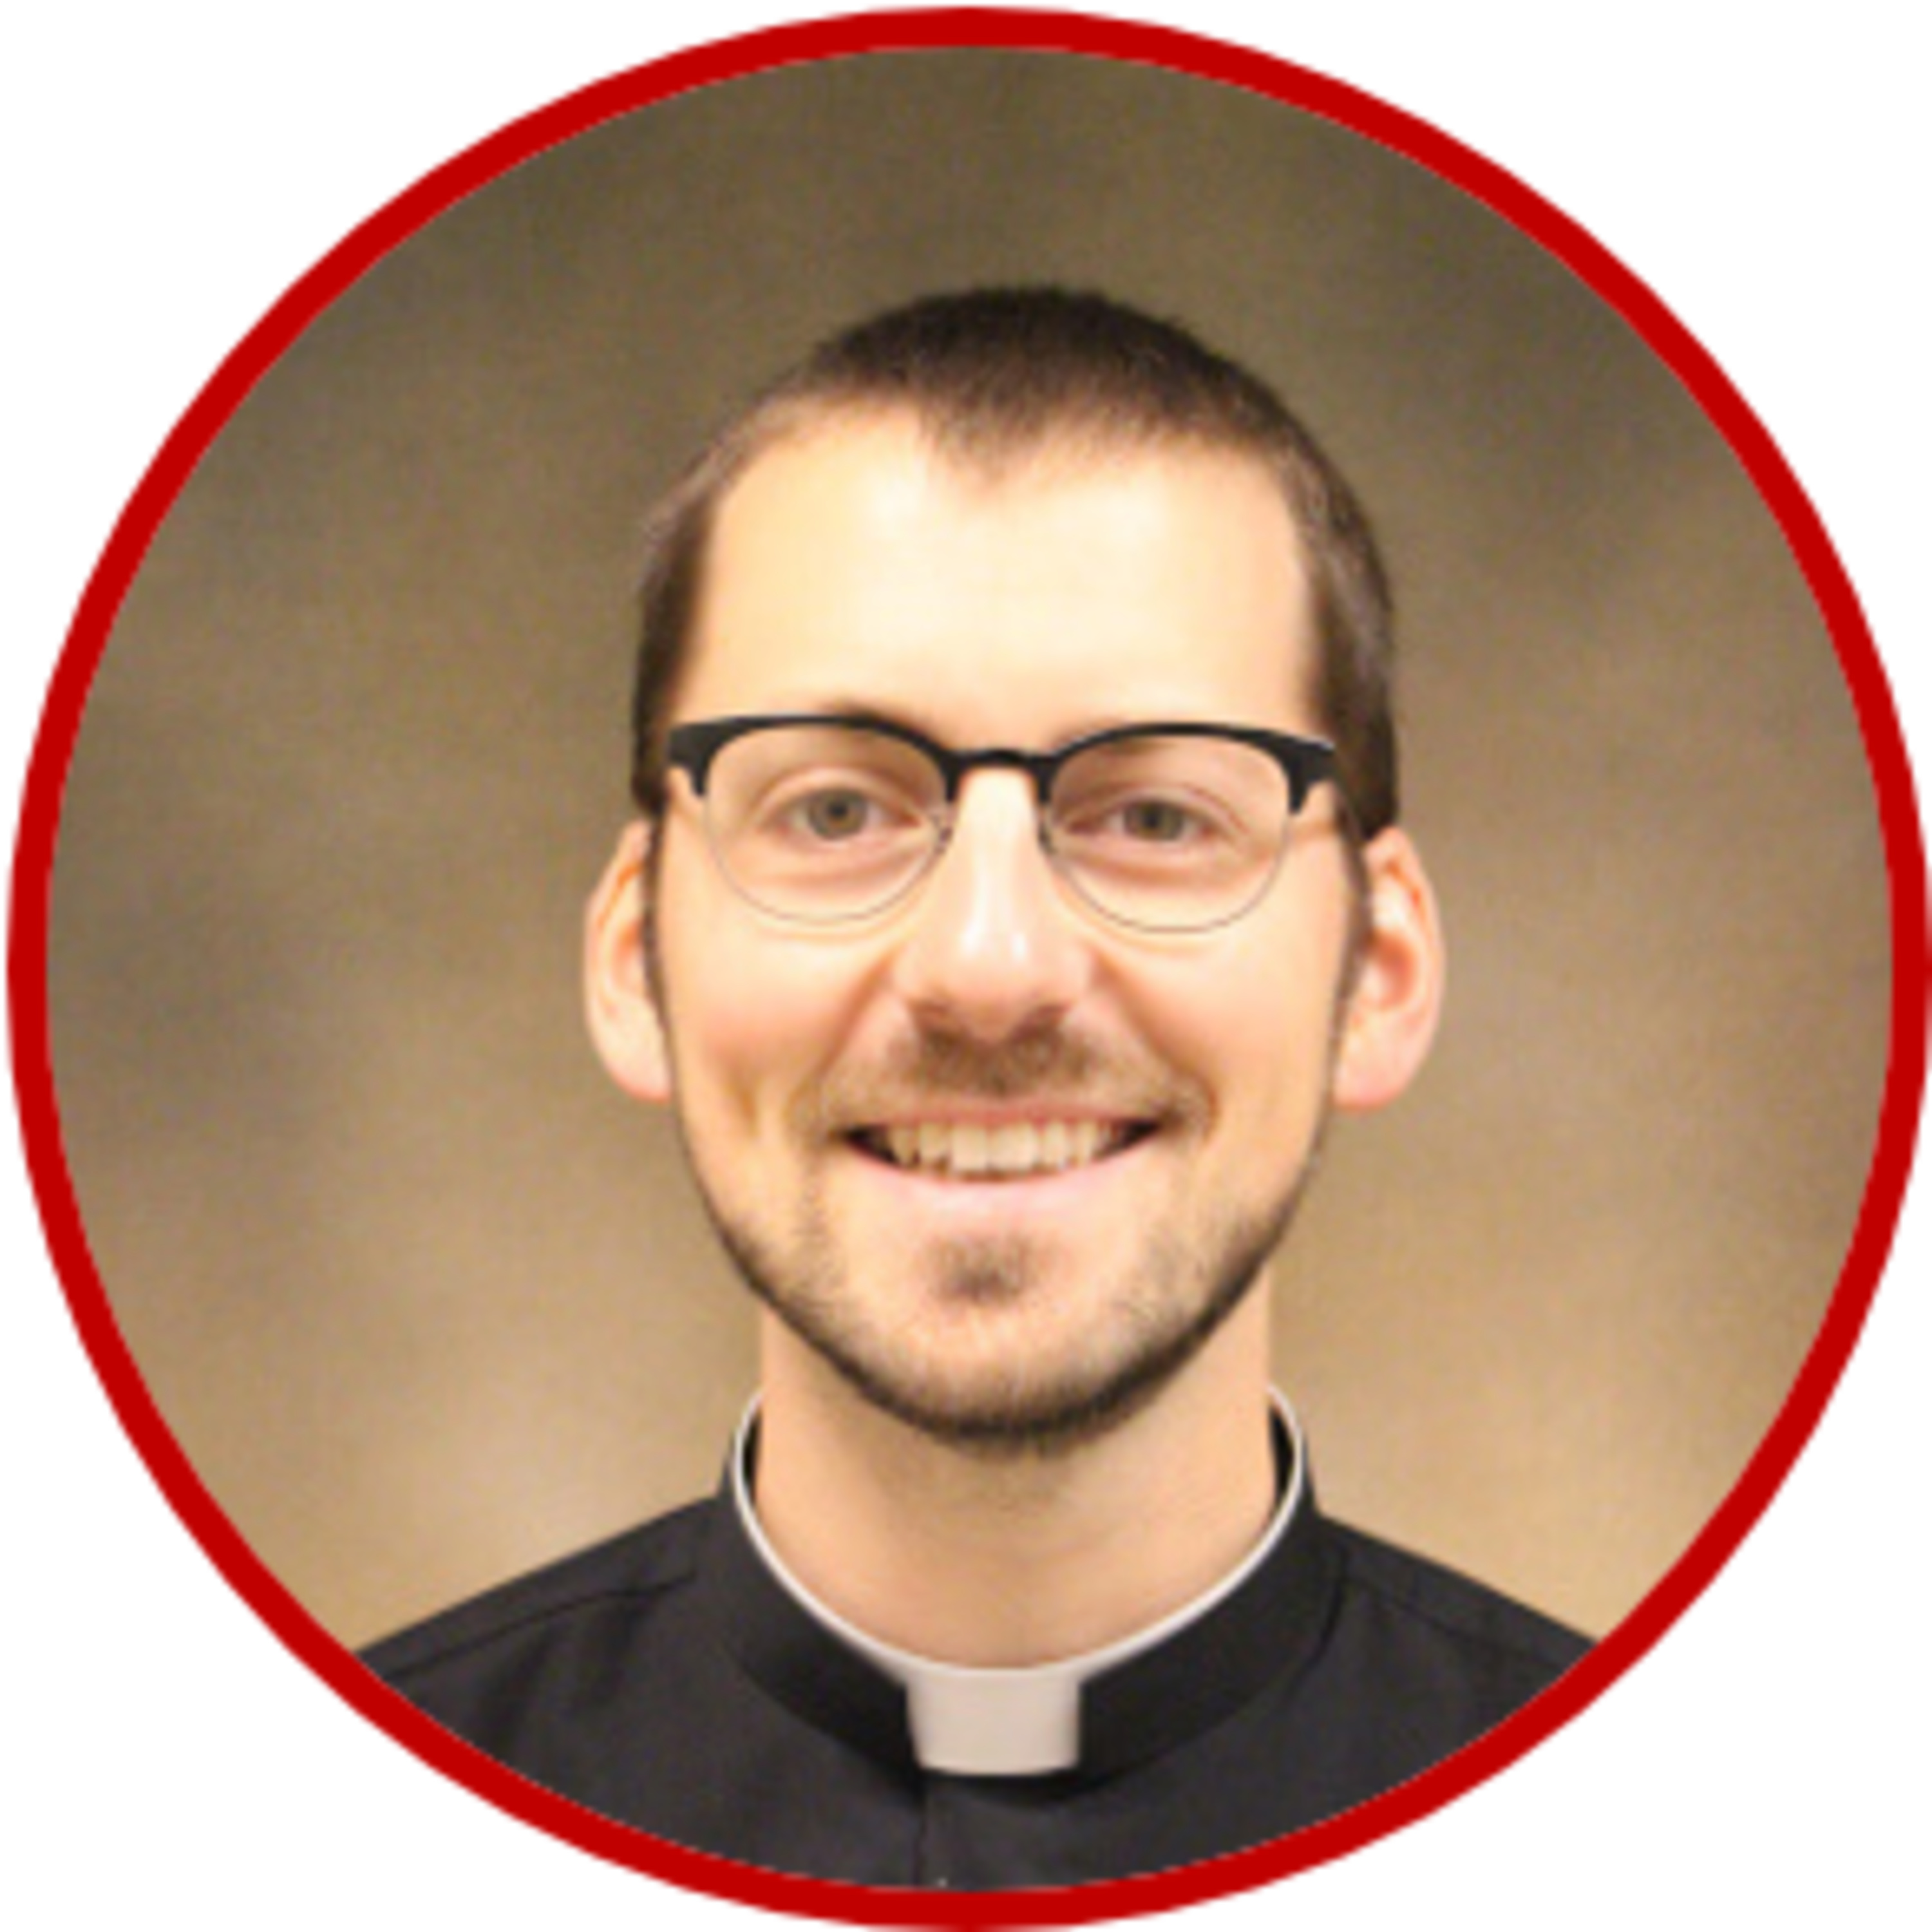 26th Sunday in Ordinary Time: Fr. Christian DeCarlo